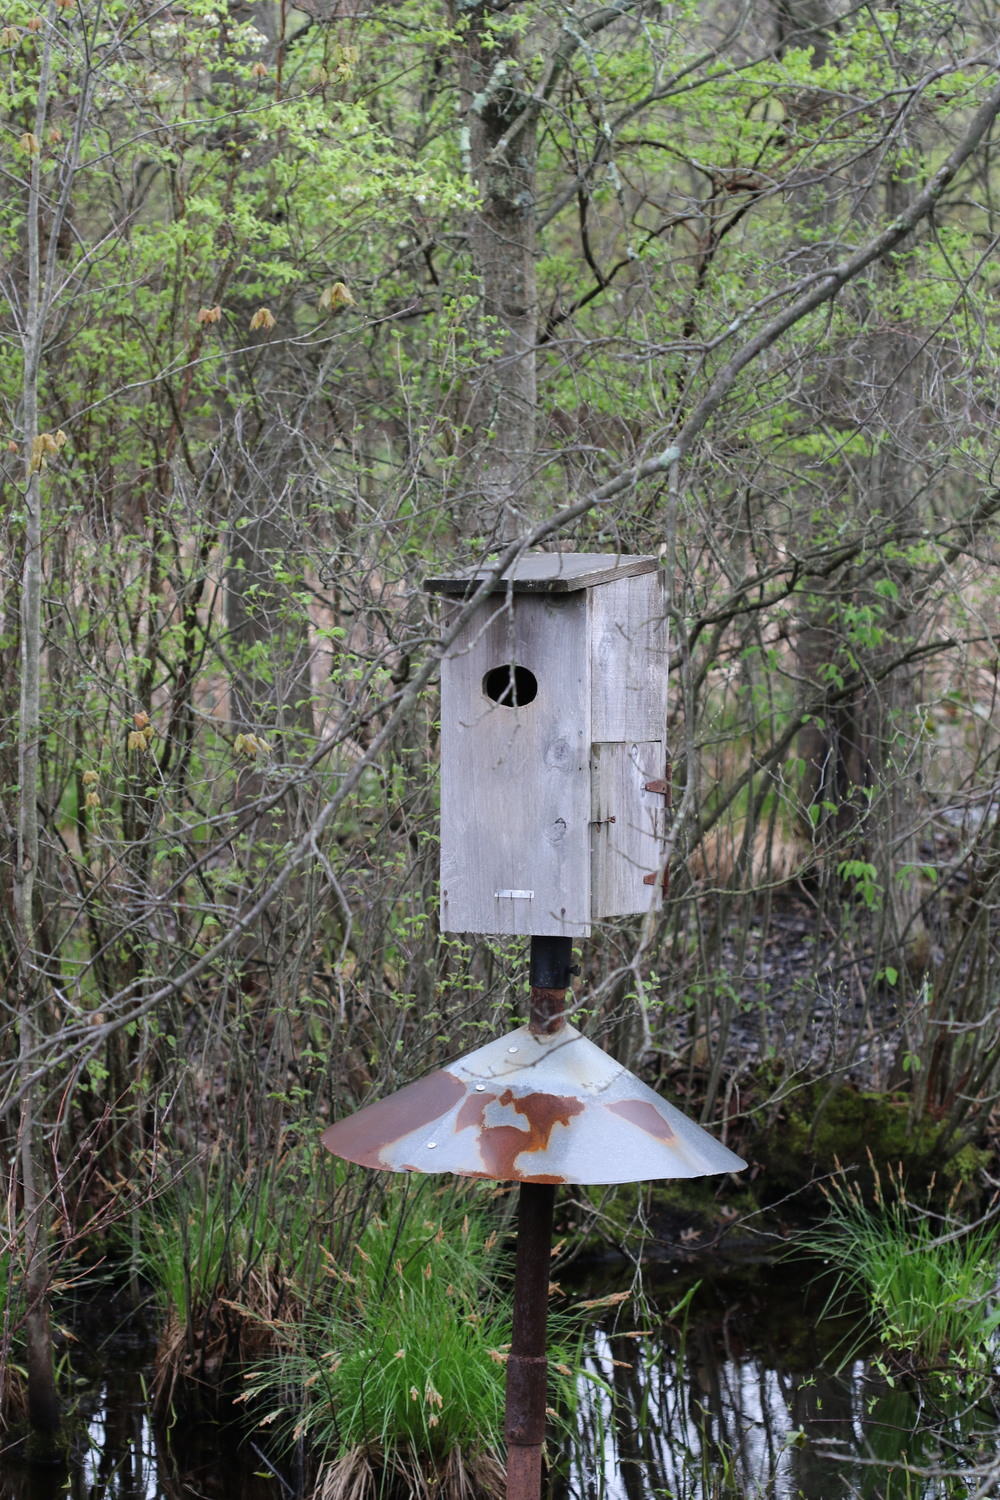 Nest Box for Wood Ducks